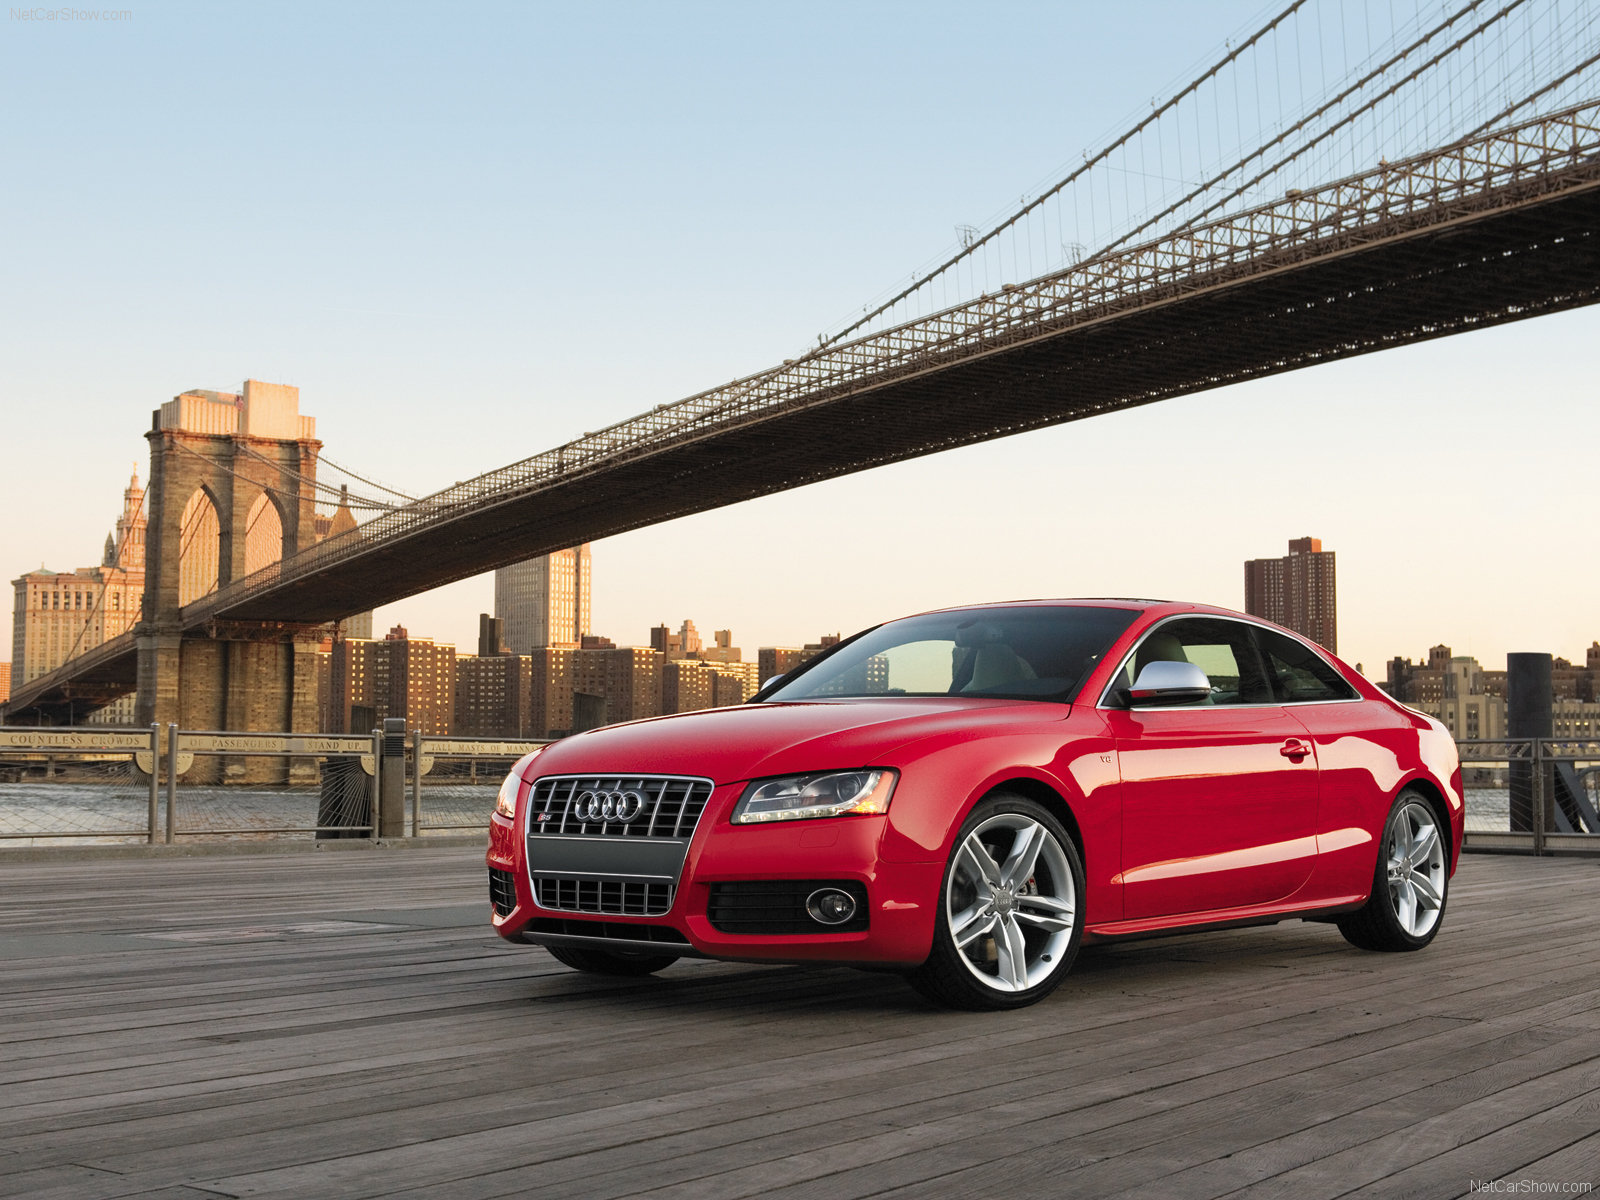 Audi Cars Wallpapers Hd All Hd Wallpapers